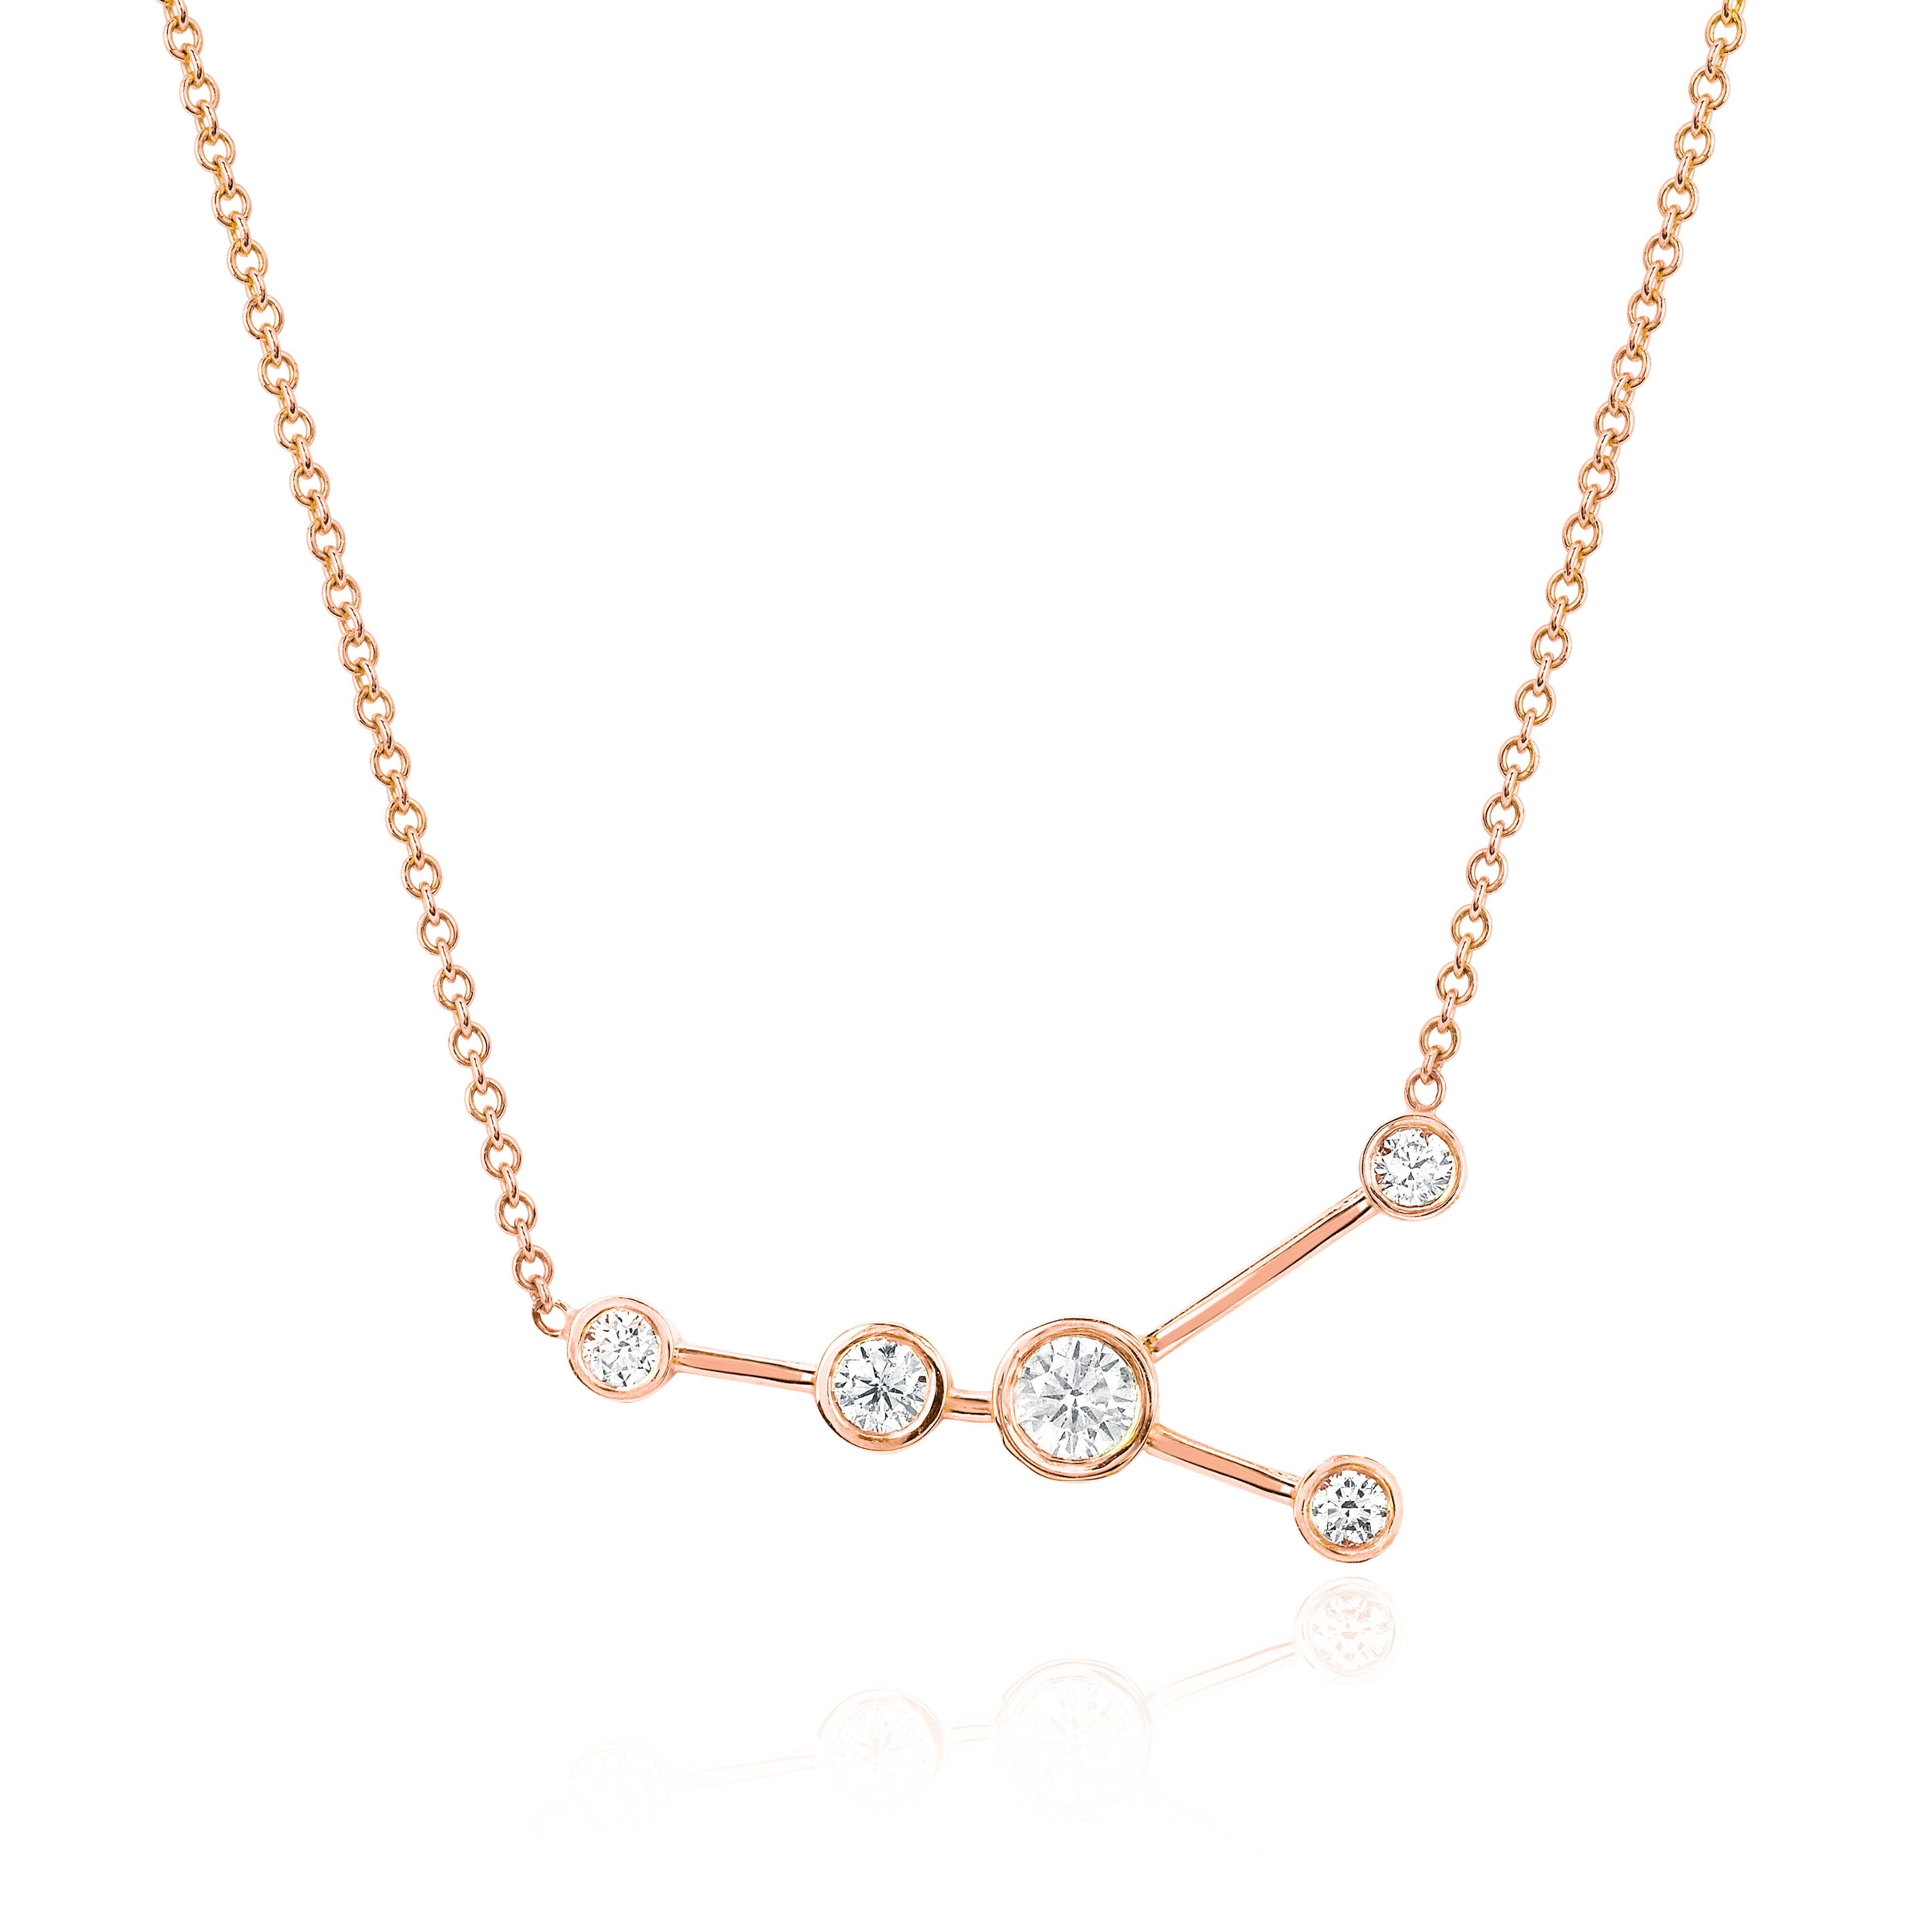 NEW! Cancer Diamond Constellation Necklace